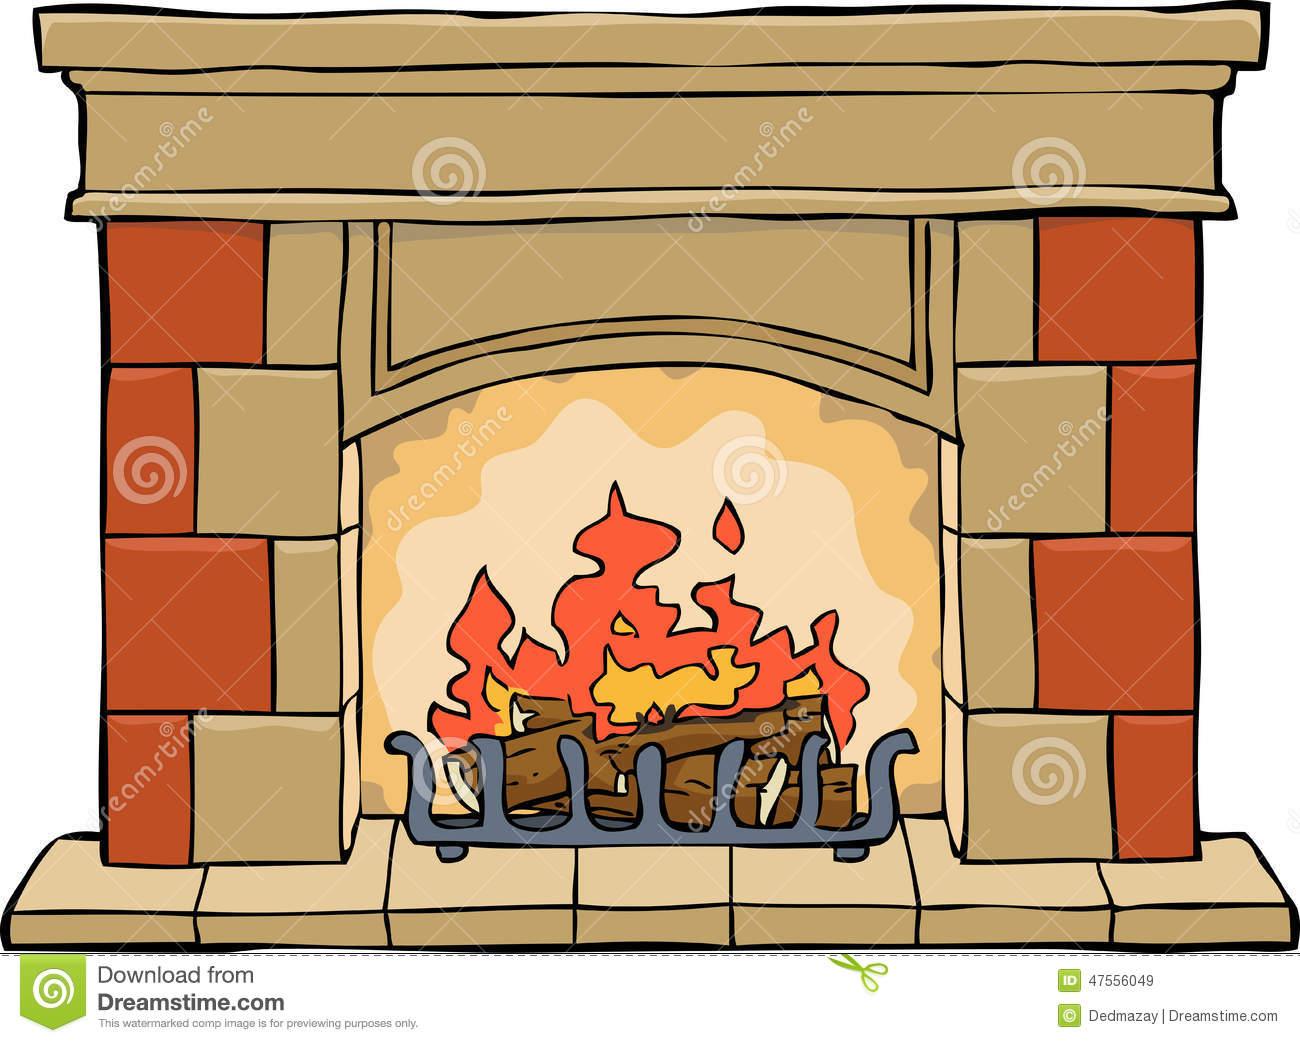 clipart fireplace fire - photo #24